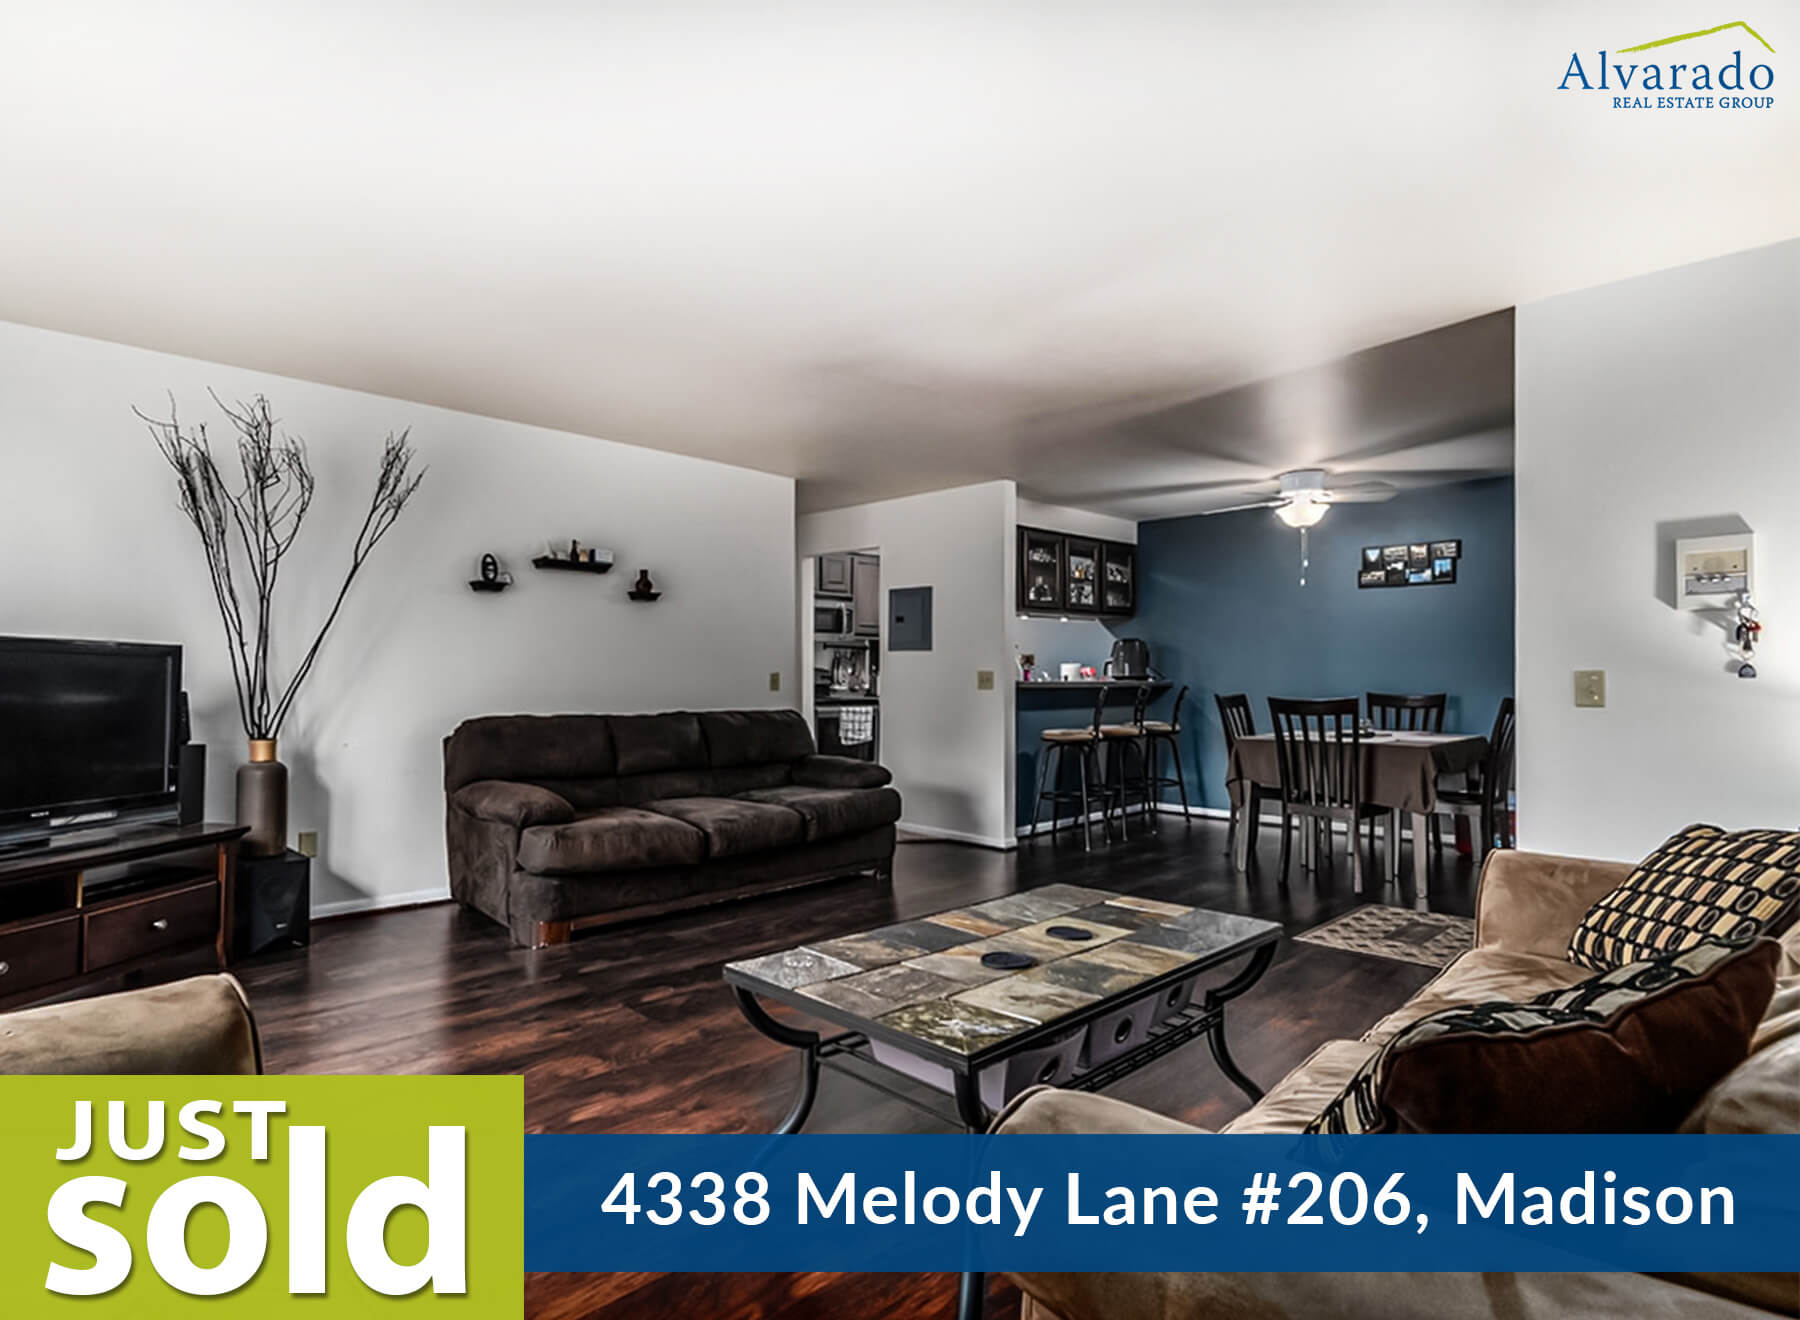 4338 Melody Lane #206, Madison – Sold by Alvarado Real Estate Group